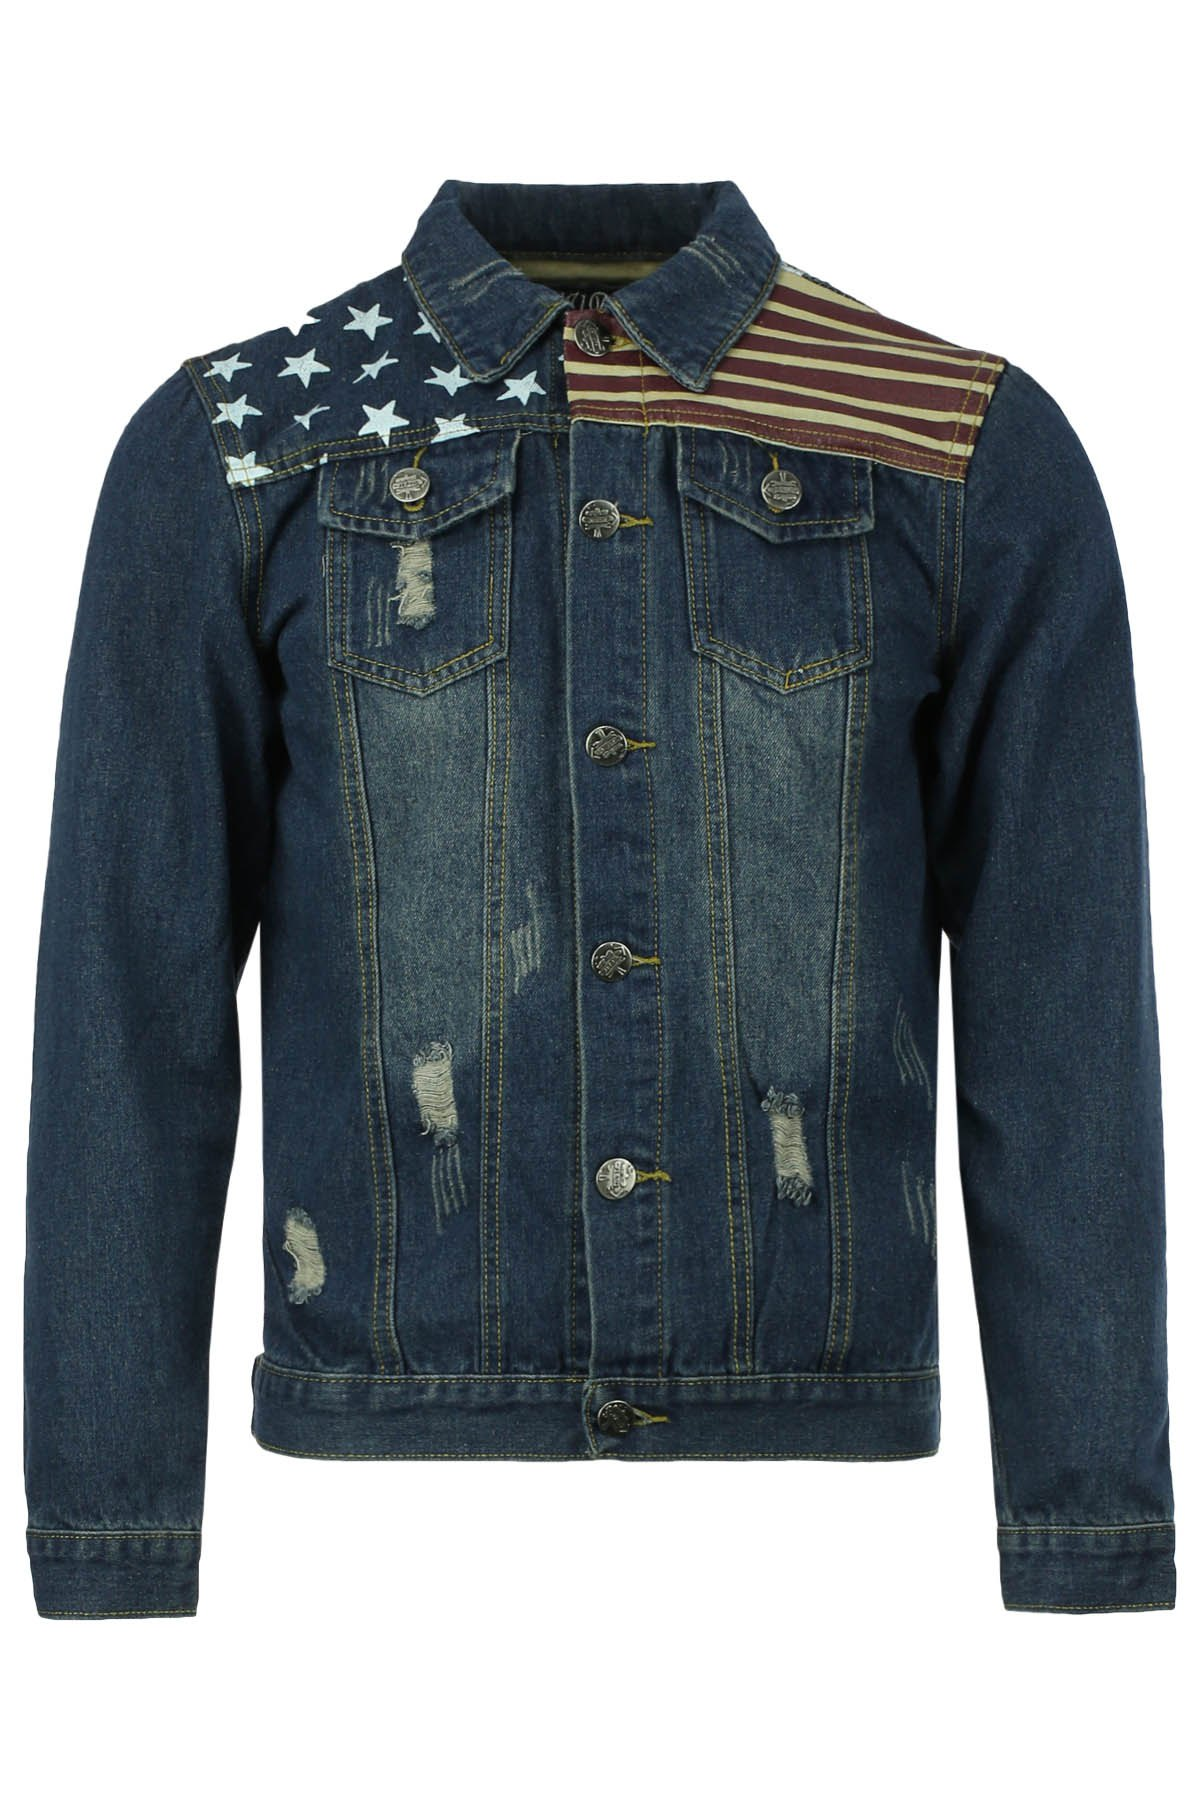 Holes and Cat's Whisker Turn-Down Collar Flag Pattern Long Sleeve Men's Denim Jacket - DEEP BLUE M